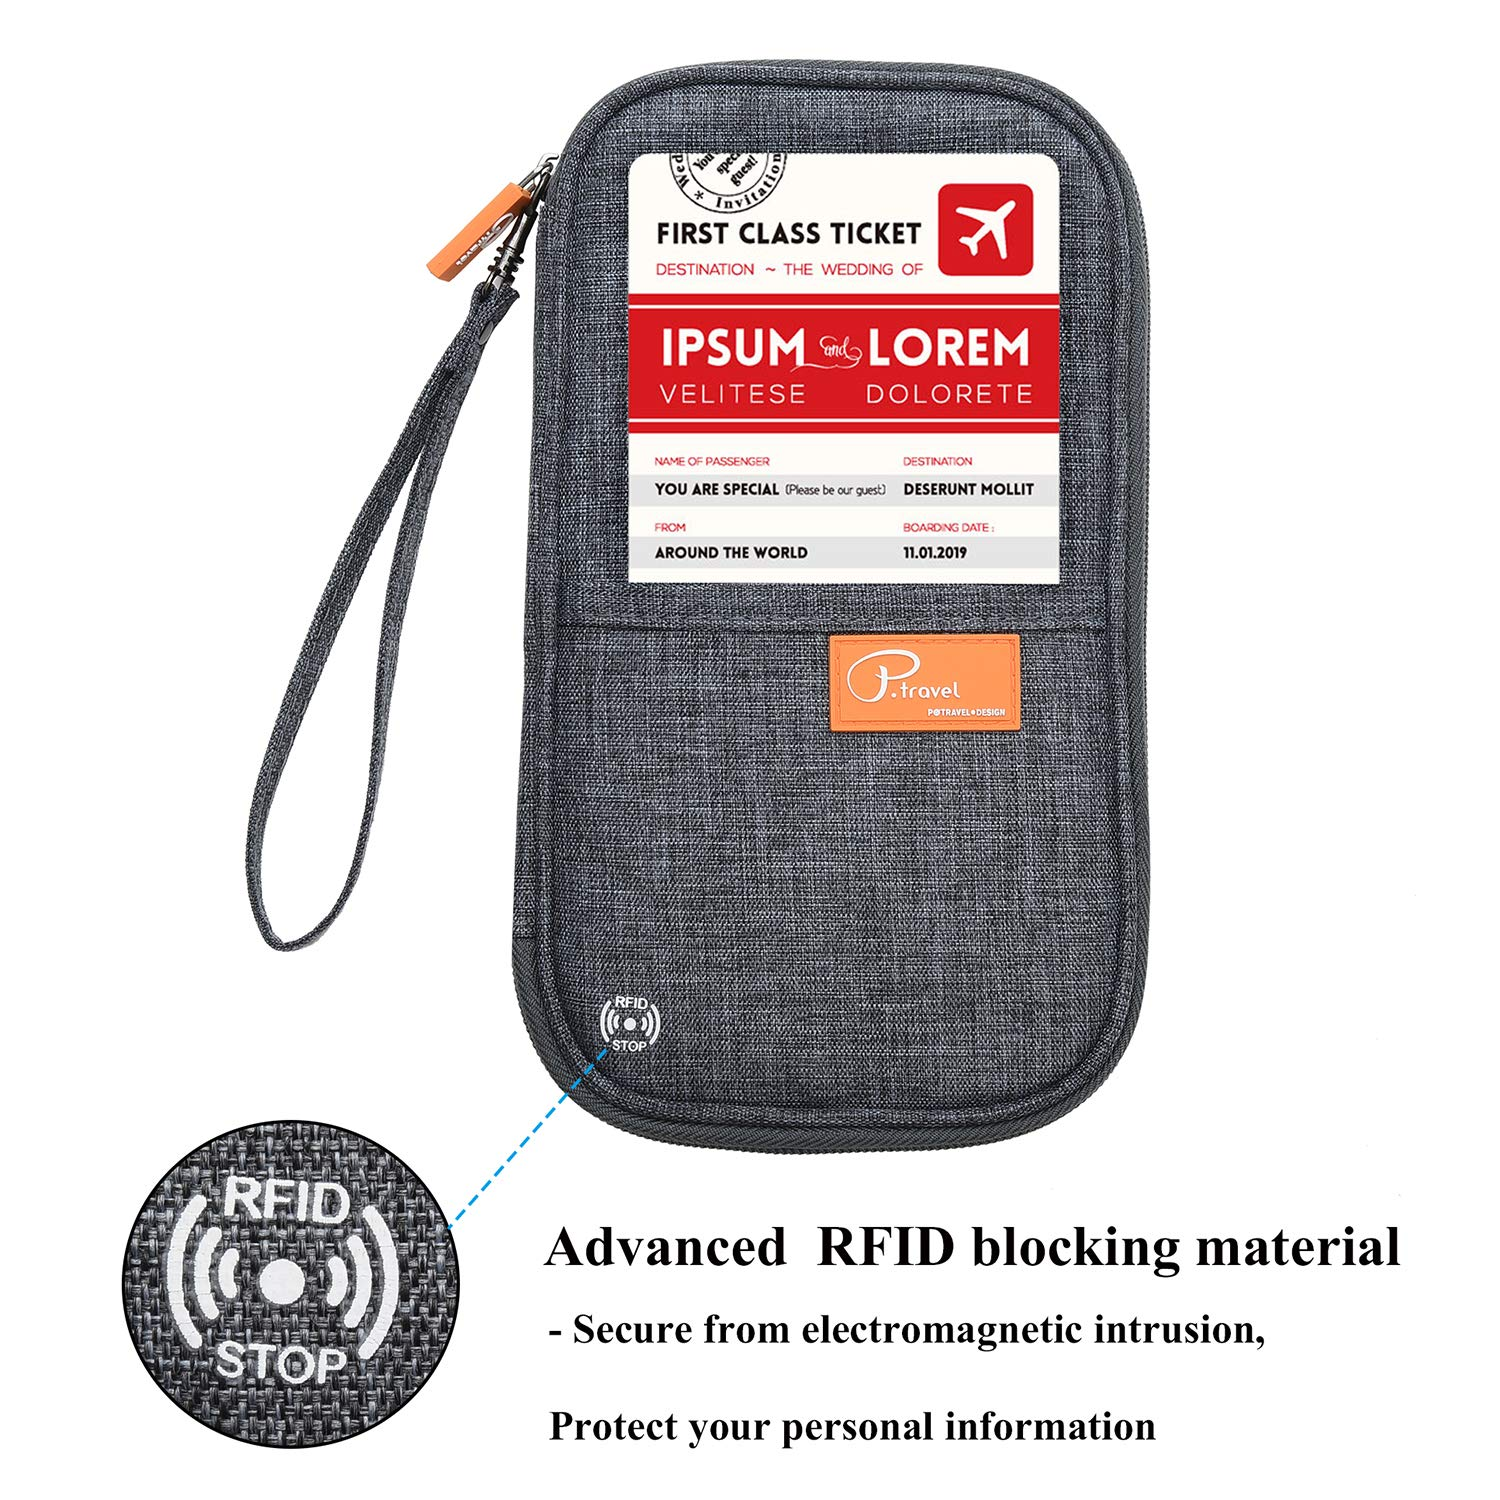 RFID Blocking Travel Passport Wallet Family Passport Holder Credit Card Ticket Document Organizer Bag with 3pcs luggage Tags (Grey) by Marcoon (Image #4)